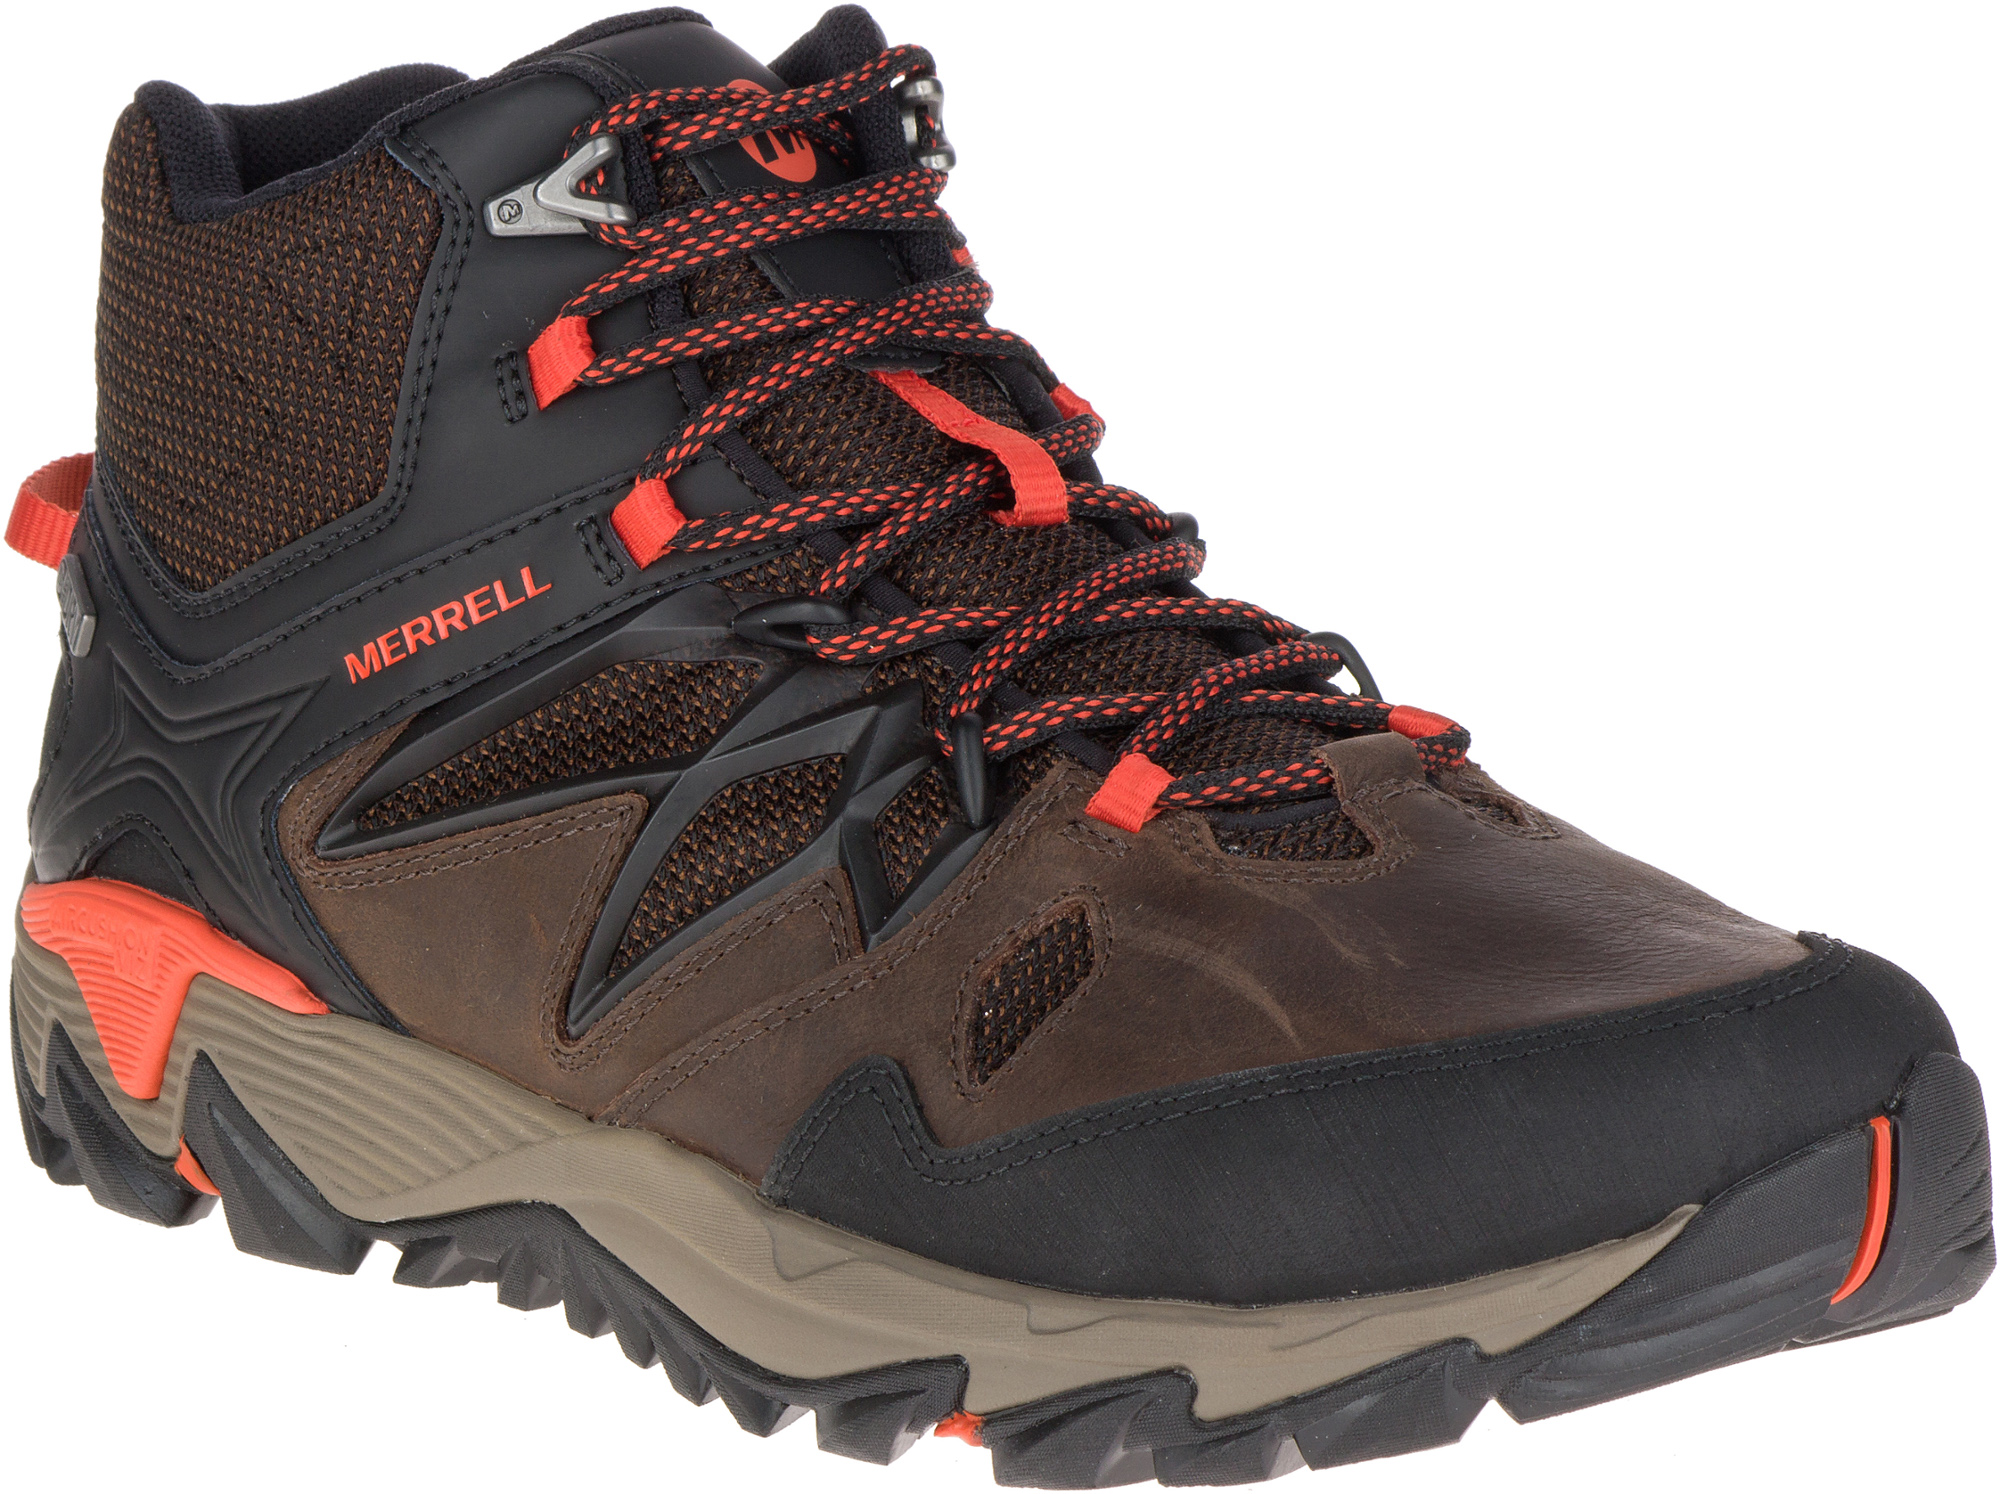 1c215a0f3 Boot Bargains: Save an Extra 25% on Several Hikers From REI ...